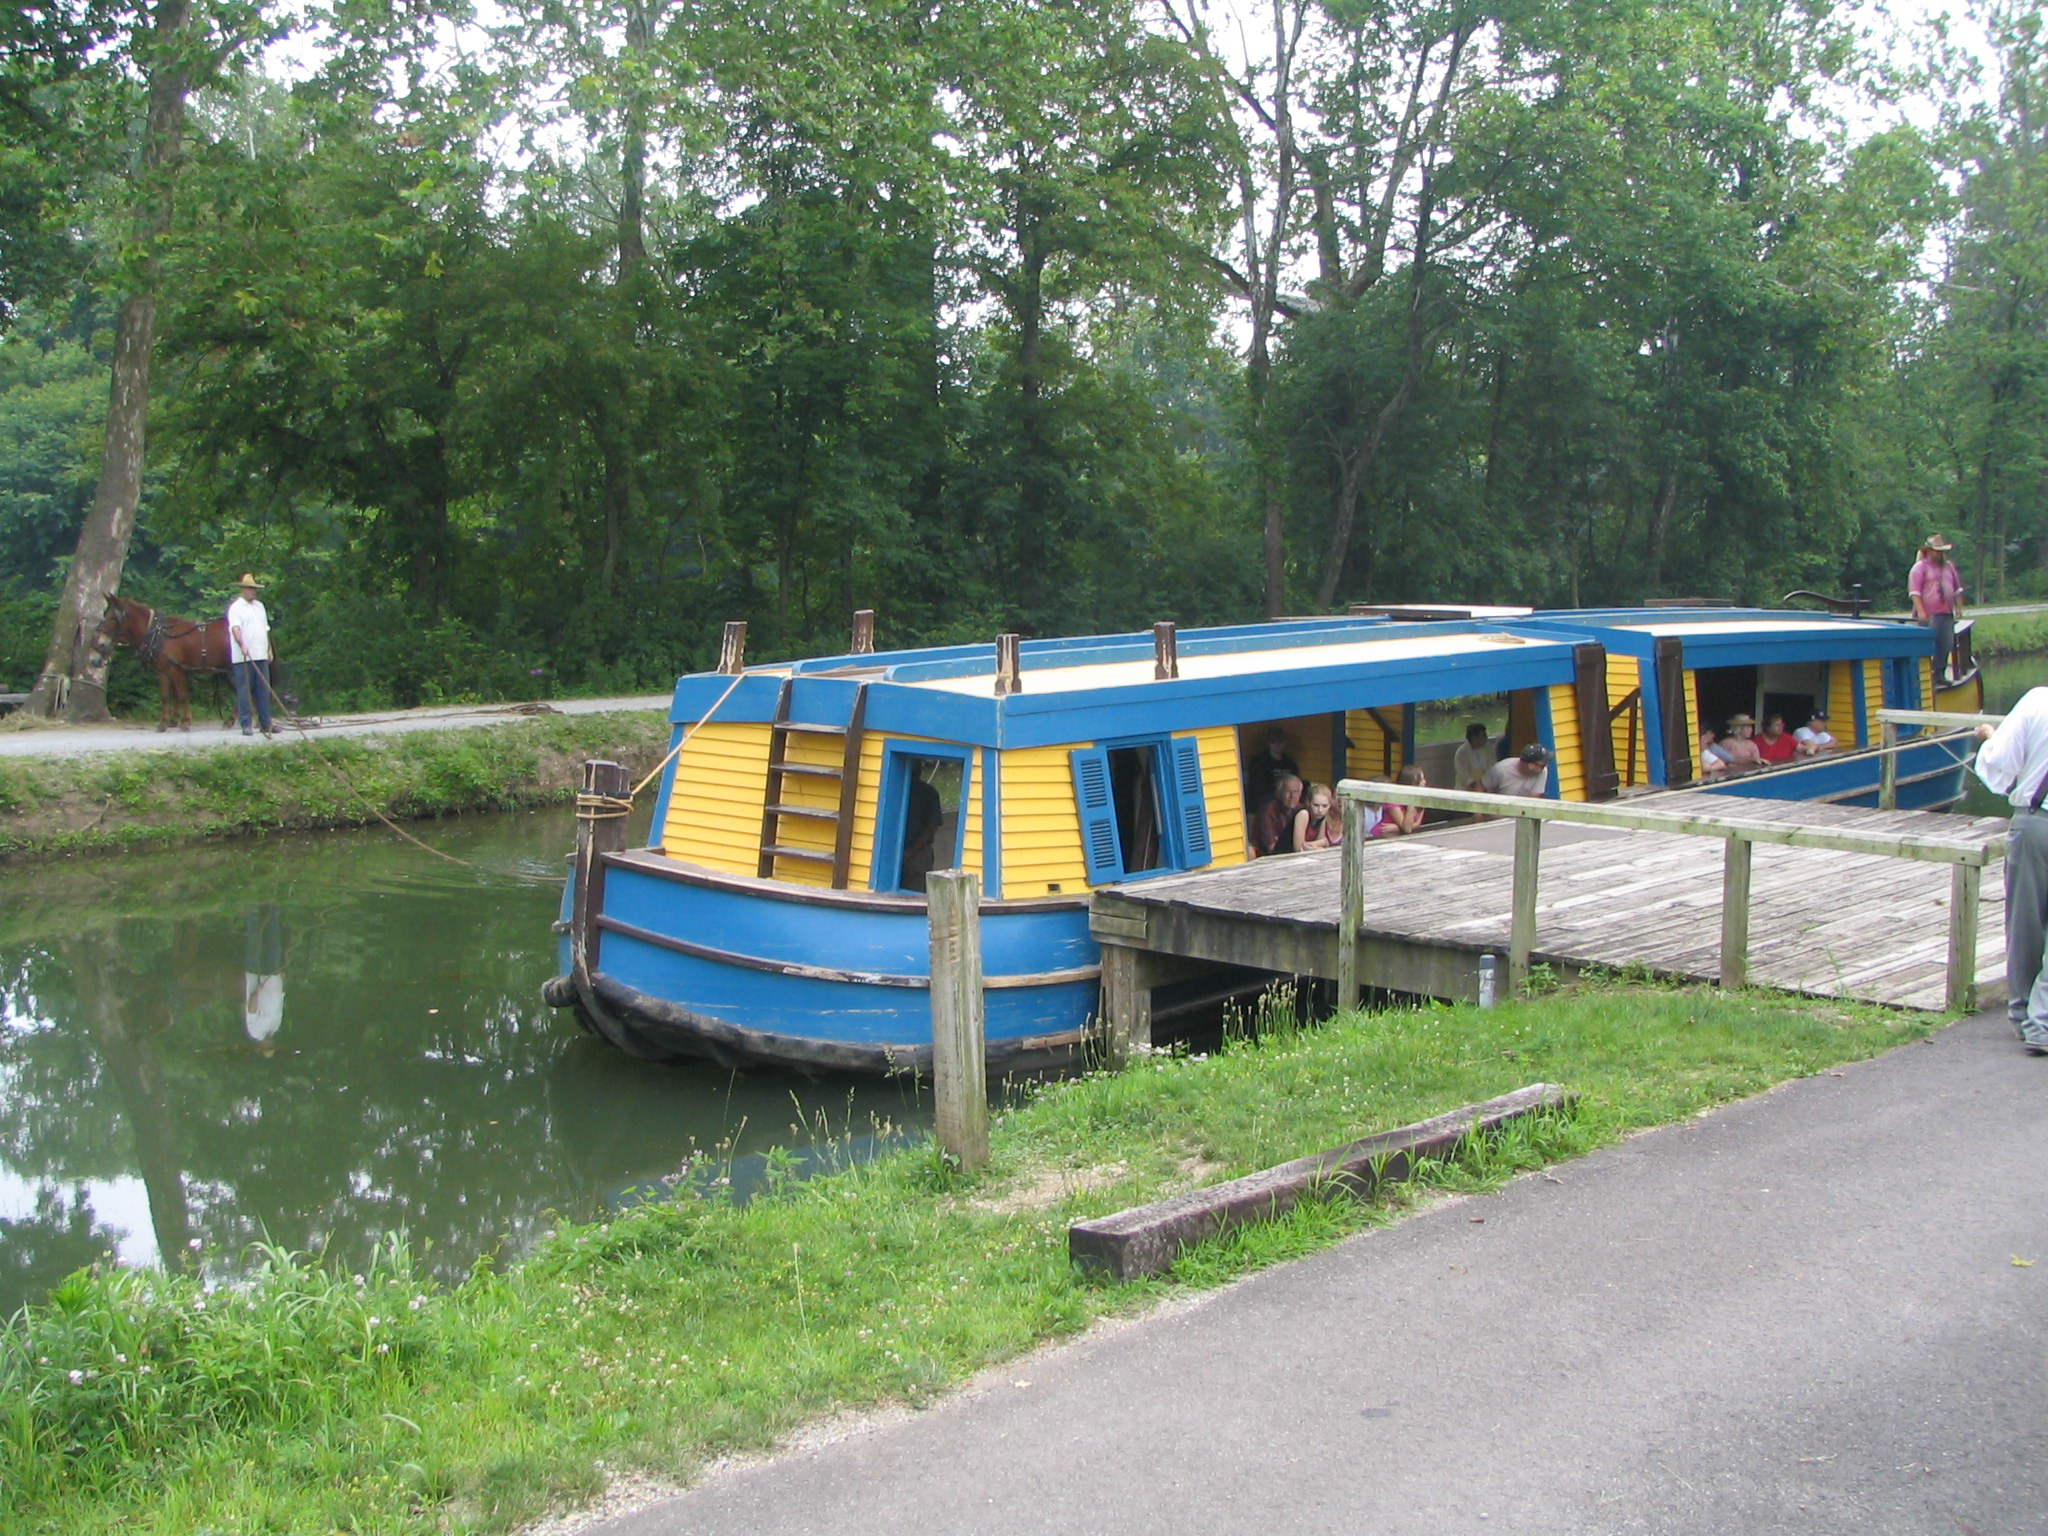 File:Canal Boat on Miami Erie Canal in Piqua jpg - Wikimedia